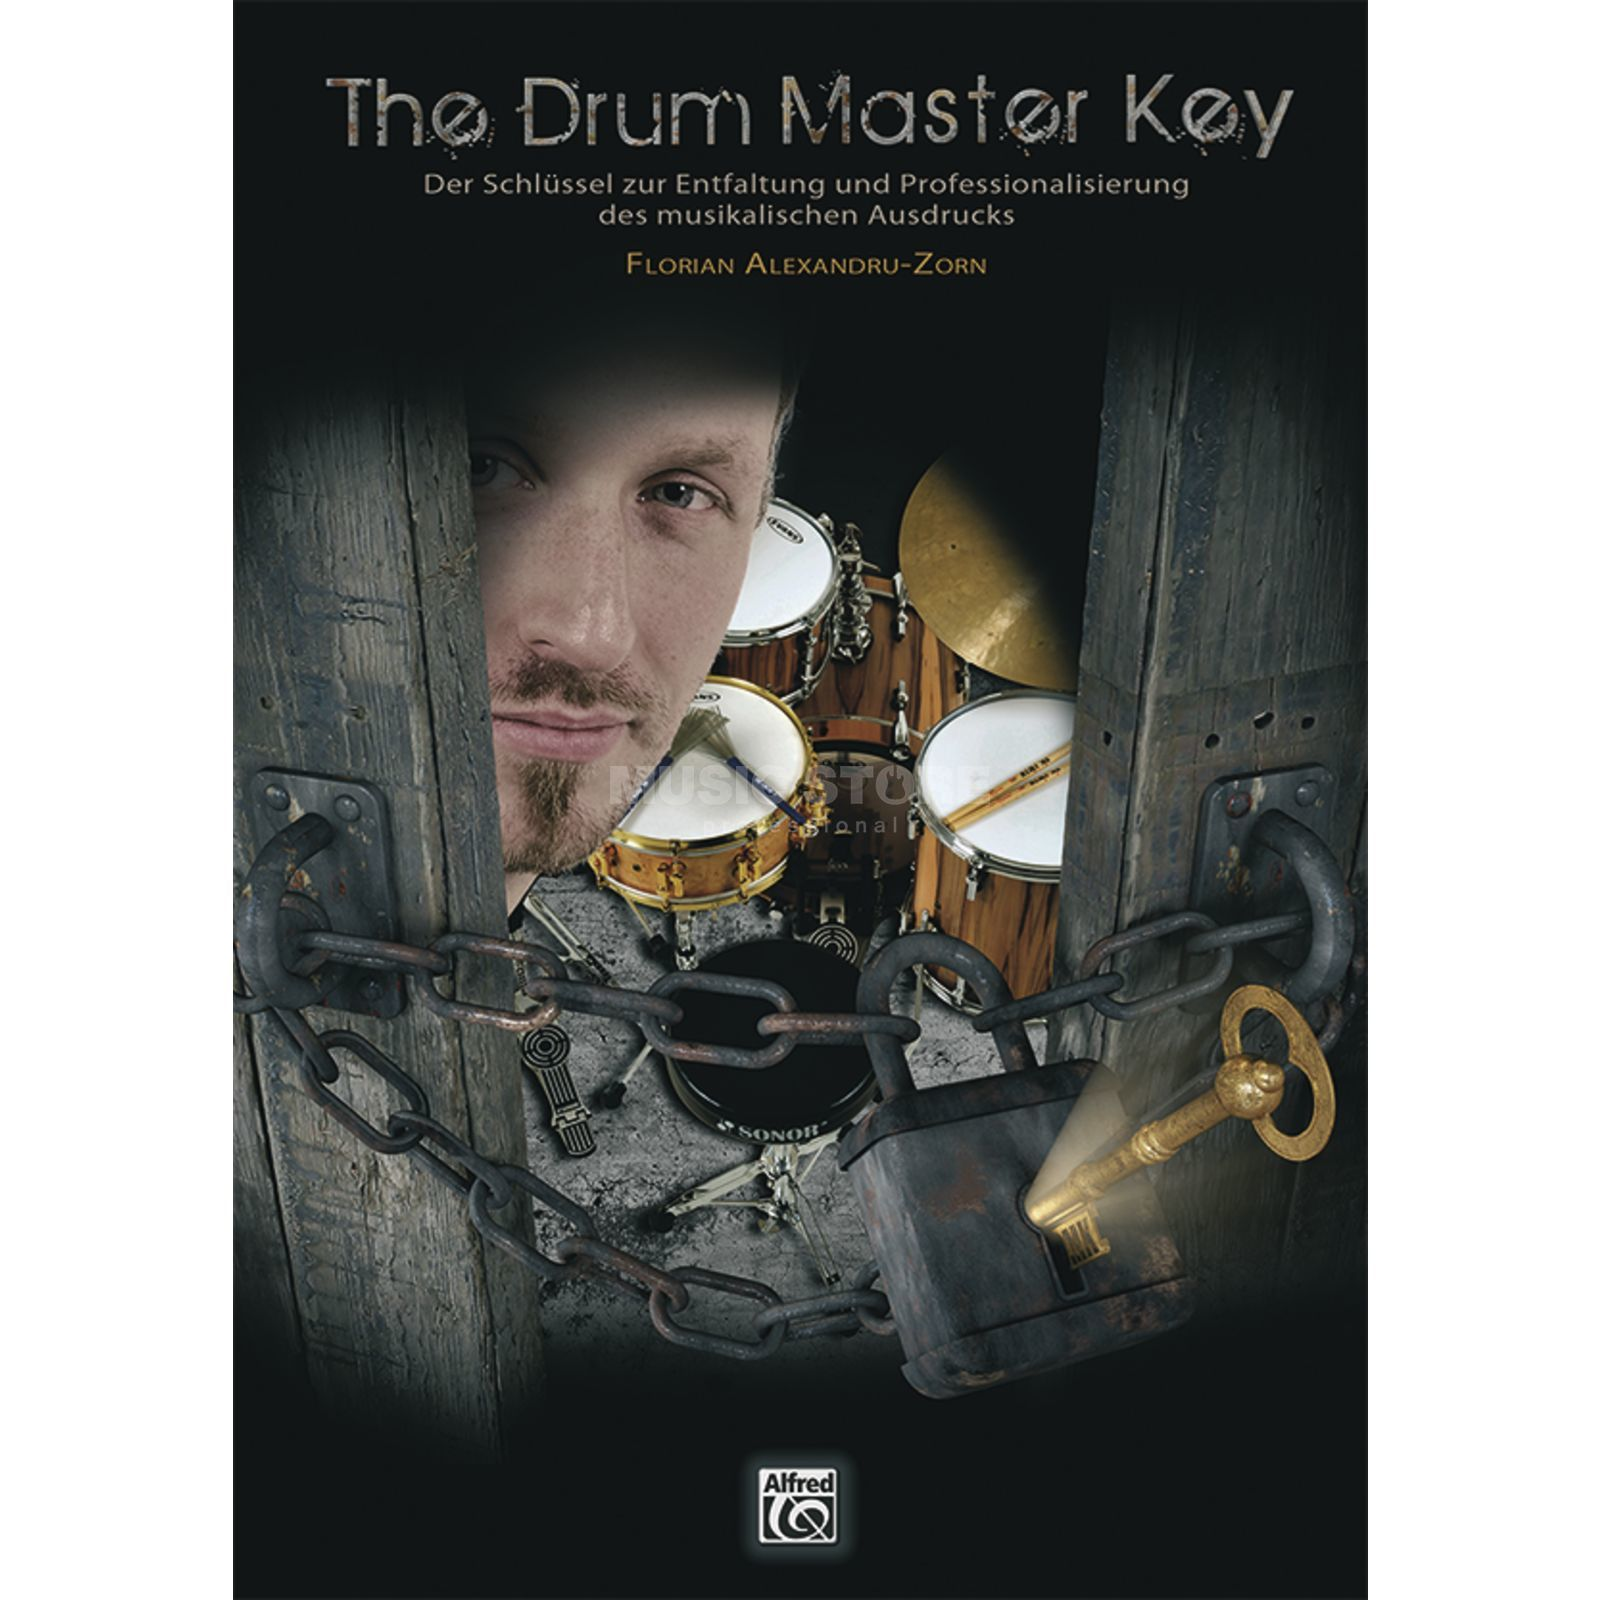 Alfred Music The Drum Master Key Alexandru-Zorn Produktbillede